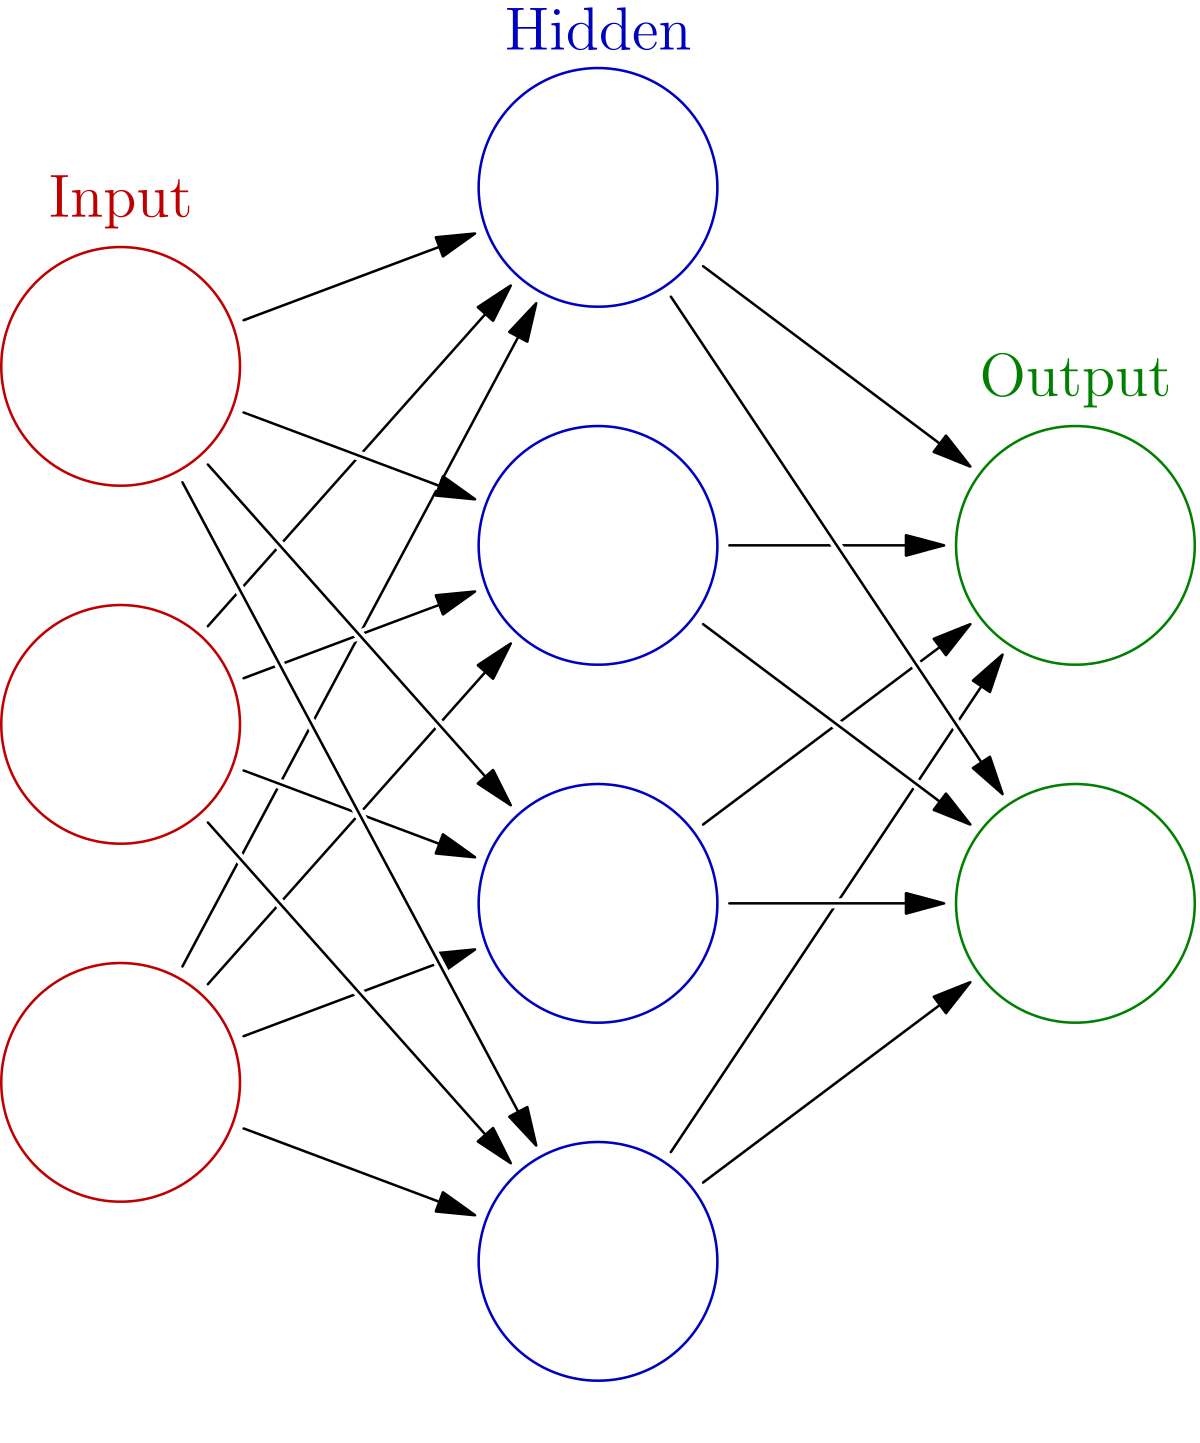 Simple Nerual Network